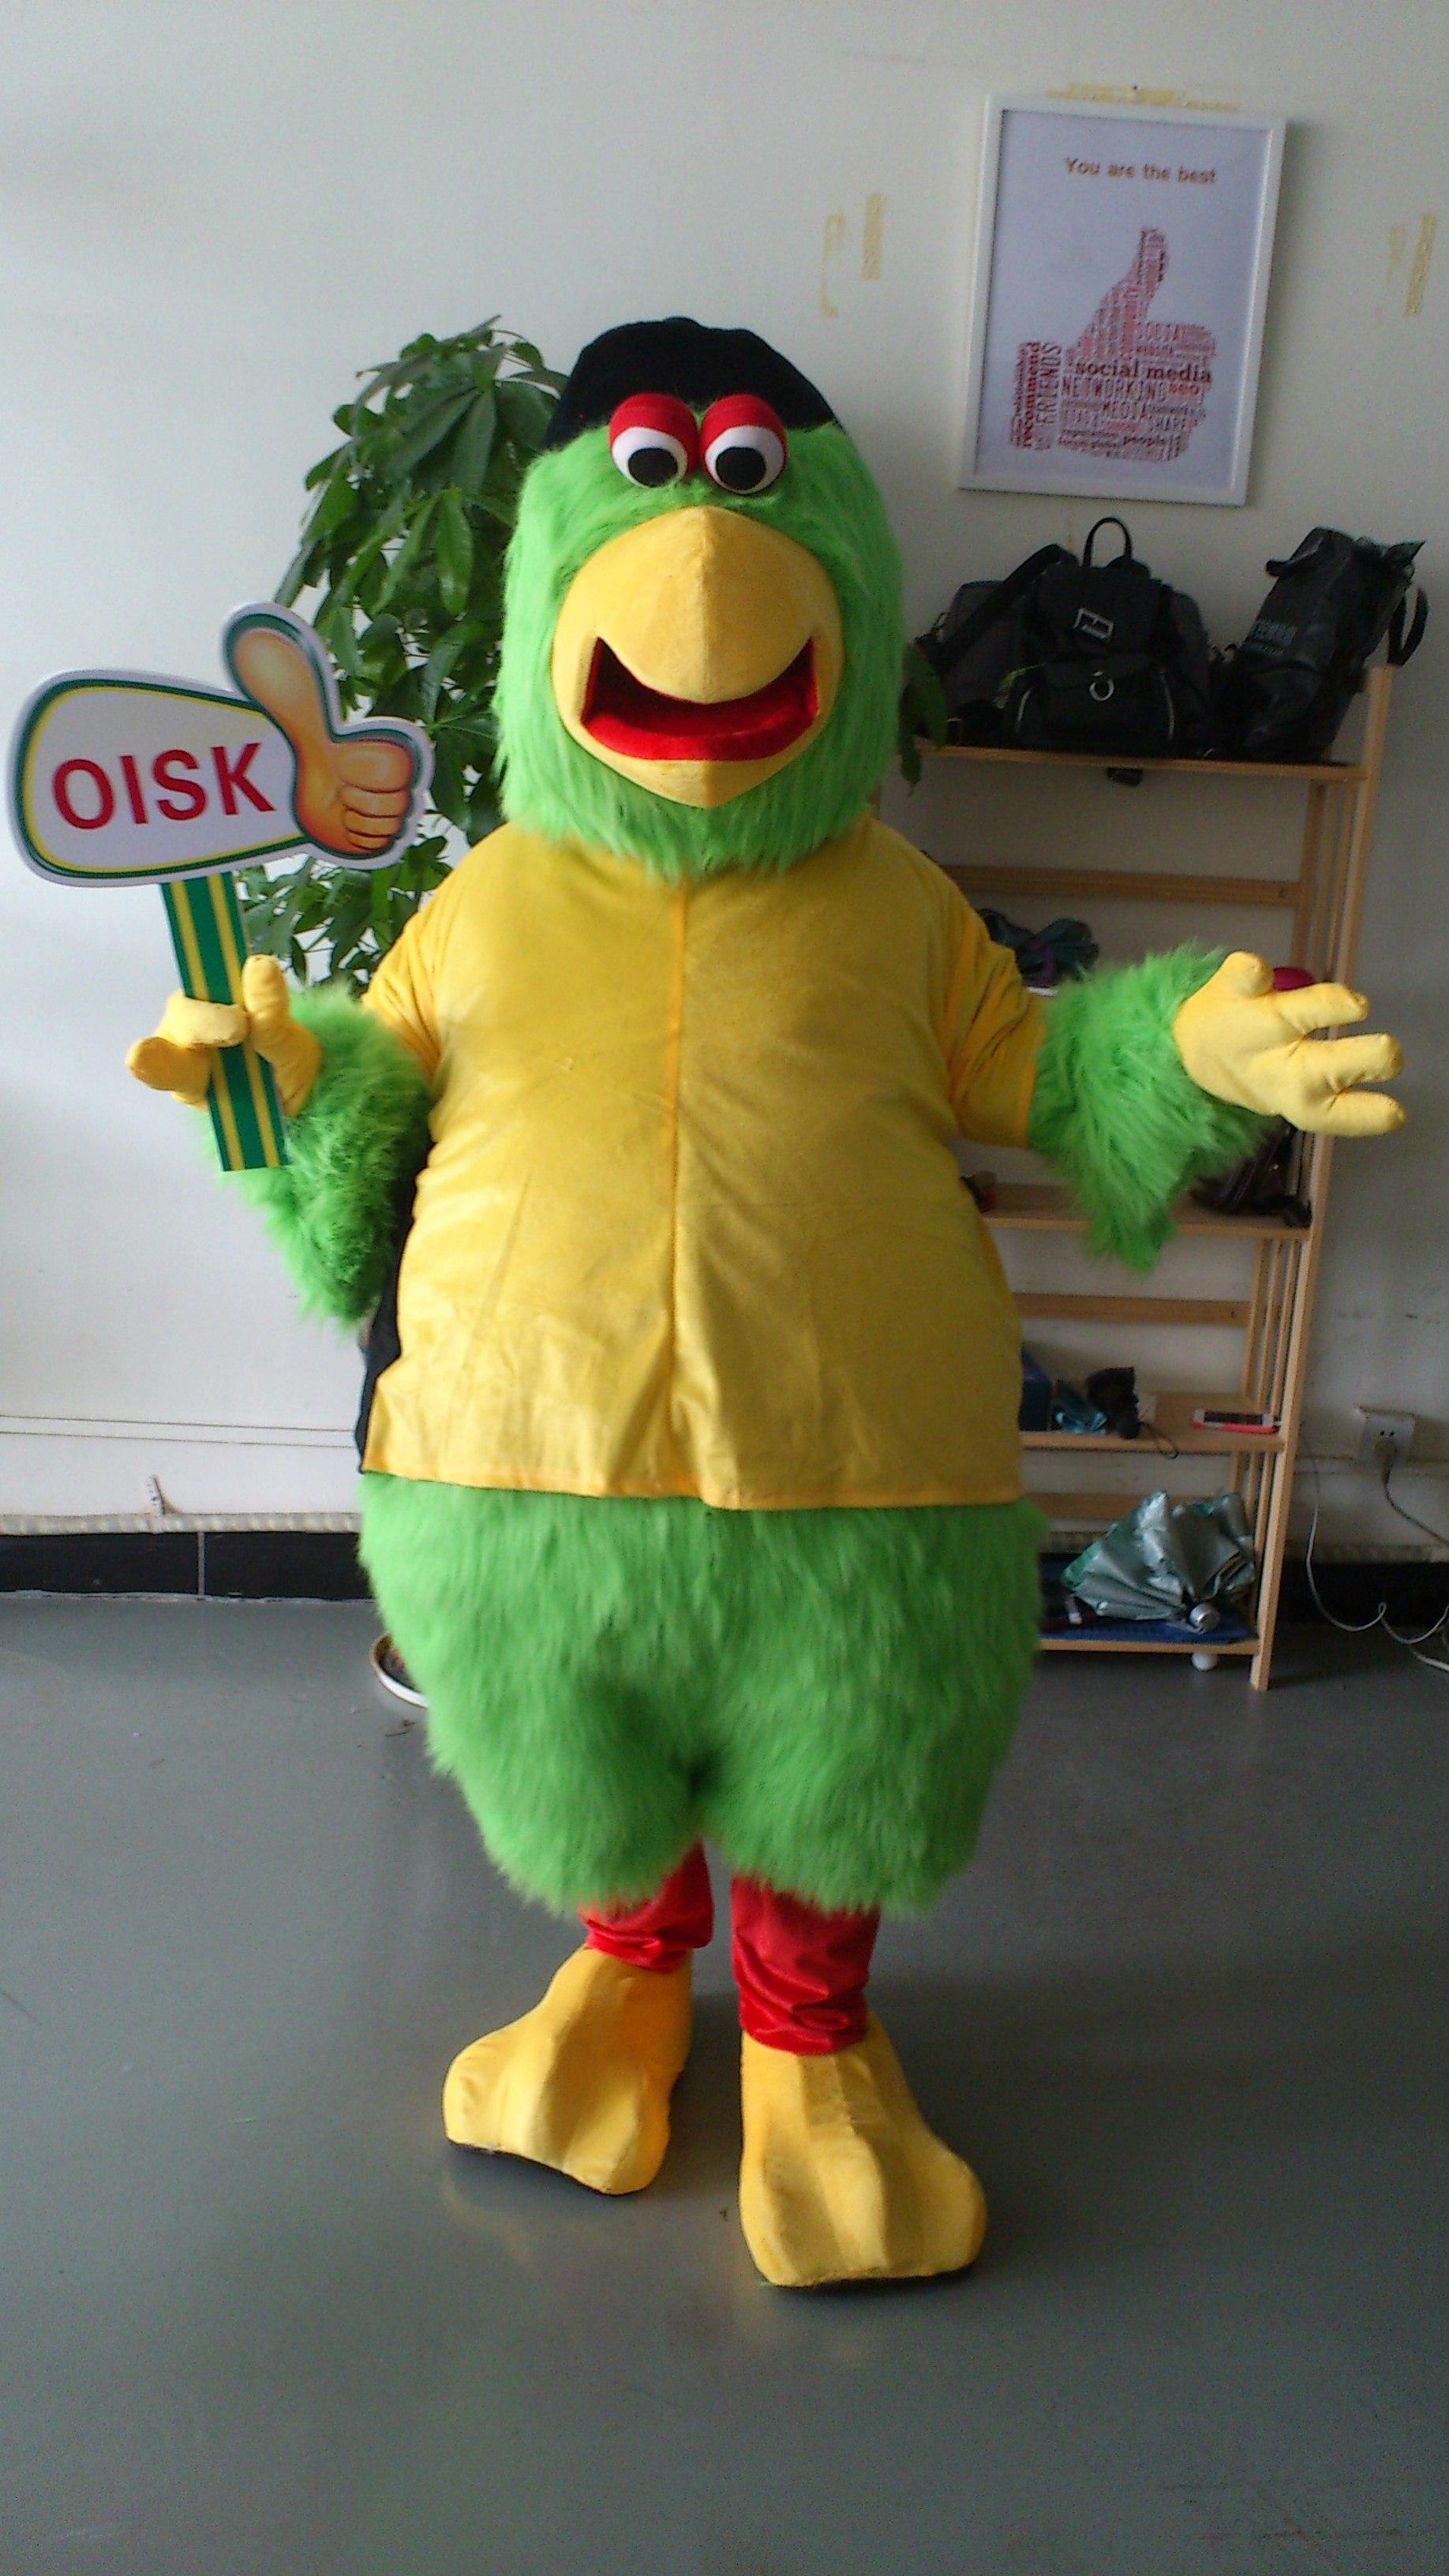 Oisk Pittsburgh Pirates Parrot Mascot Costume Fancy Outfit Football Sport Mascots Patriotic Costumes Female Pirate Costumes From Woworker $346.63| Dhgate. & Oisk Pittsburgh Pirates Parrot Mascot Costume Fancy Outfit Football ...